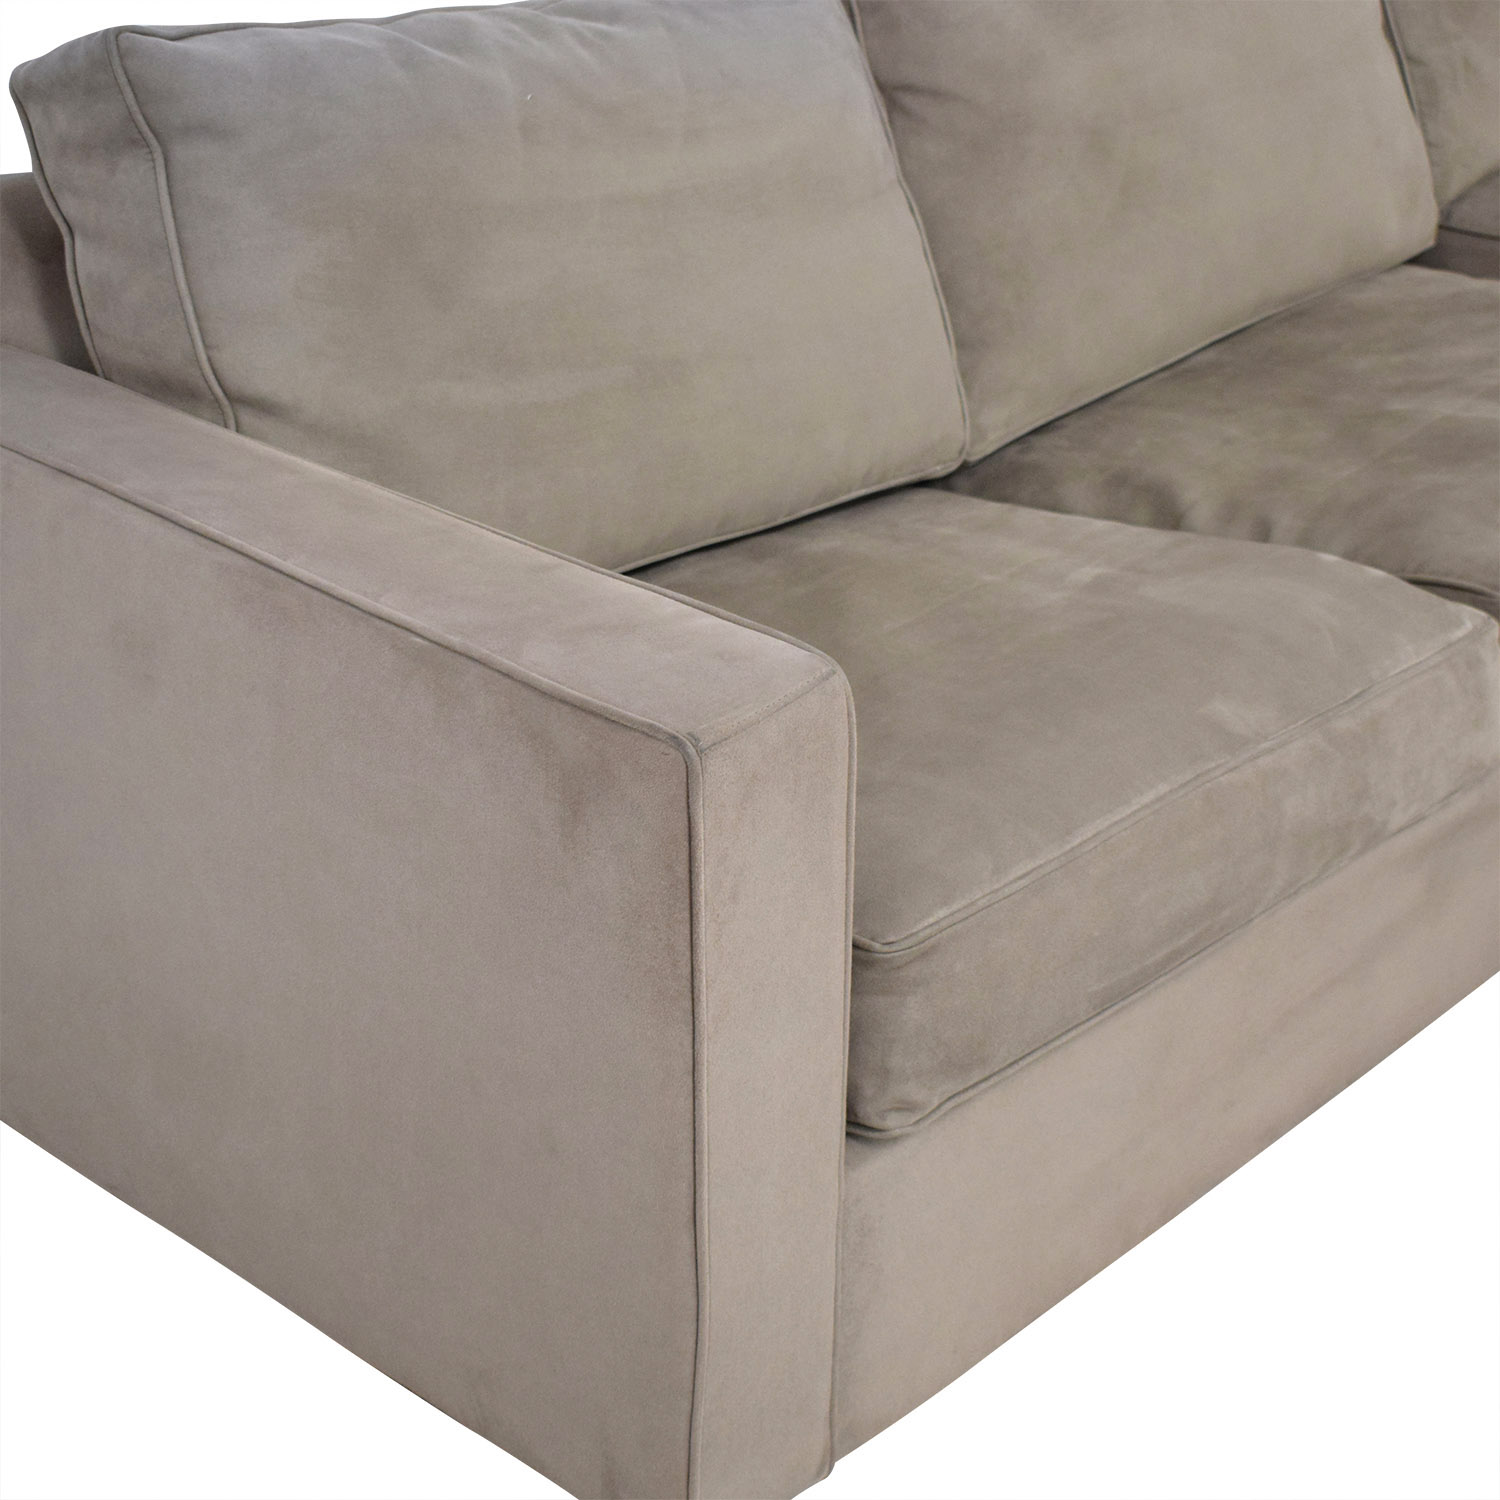 buy Room & Board Full Sleeper Sofa with Chaise Room & Board Sectionals